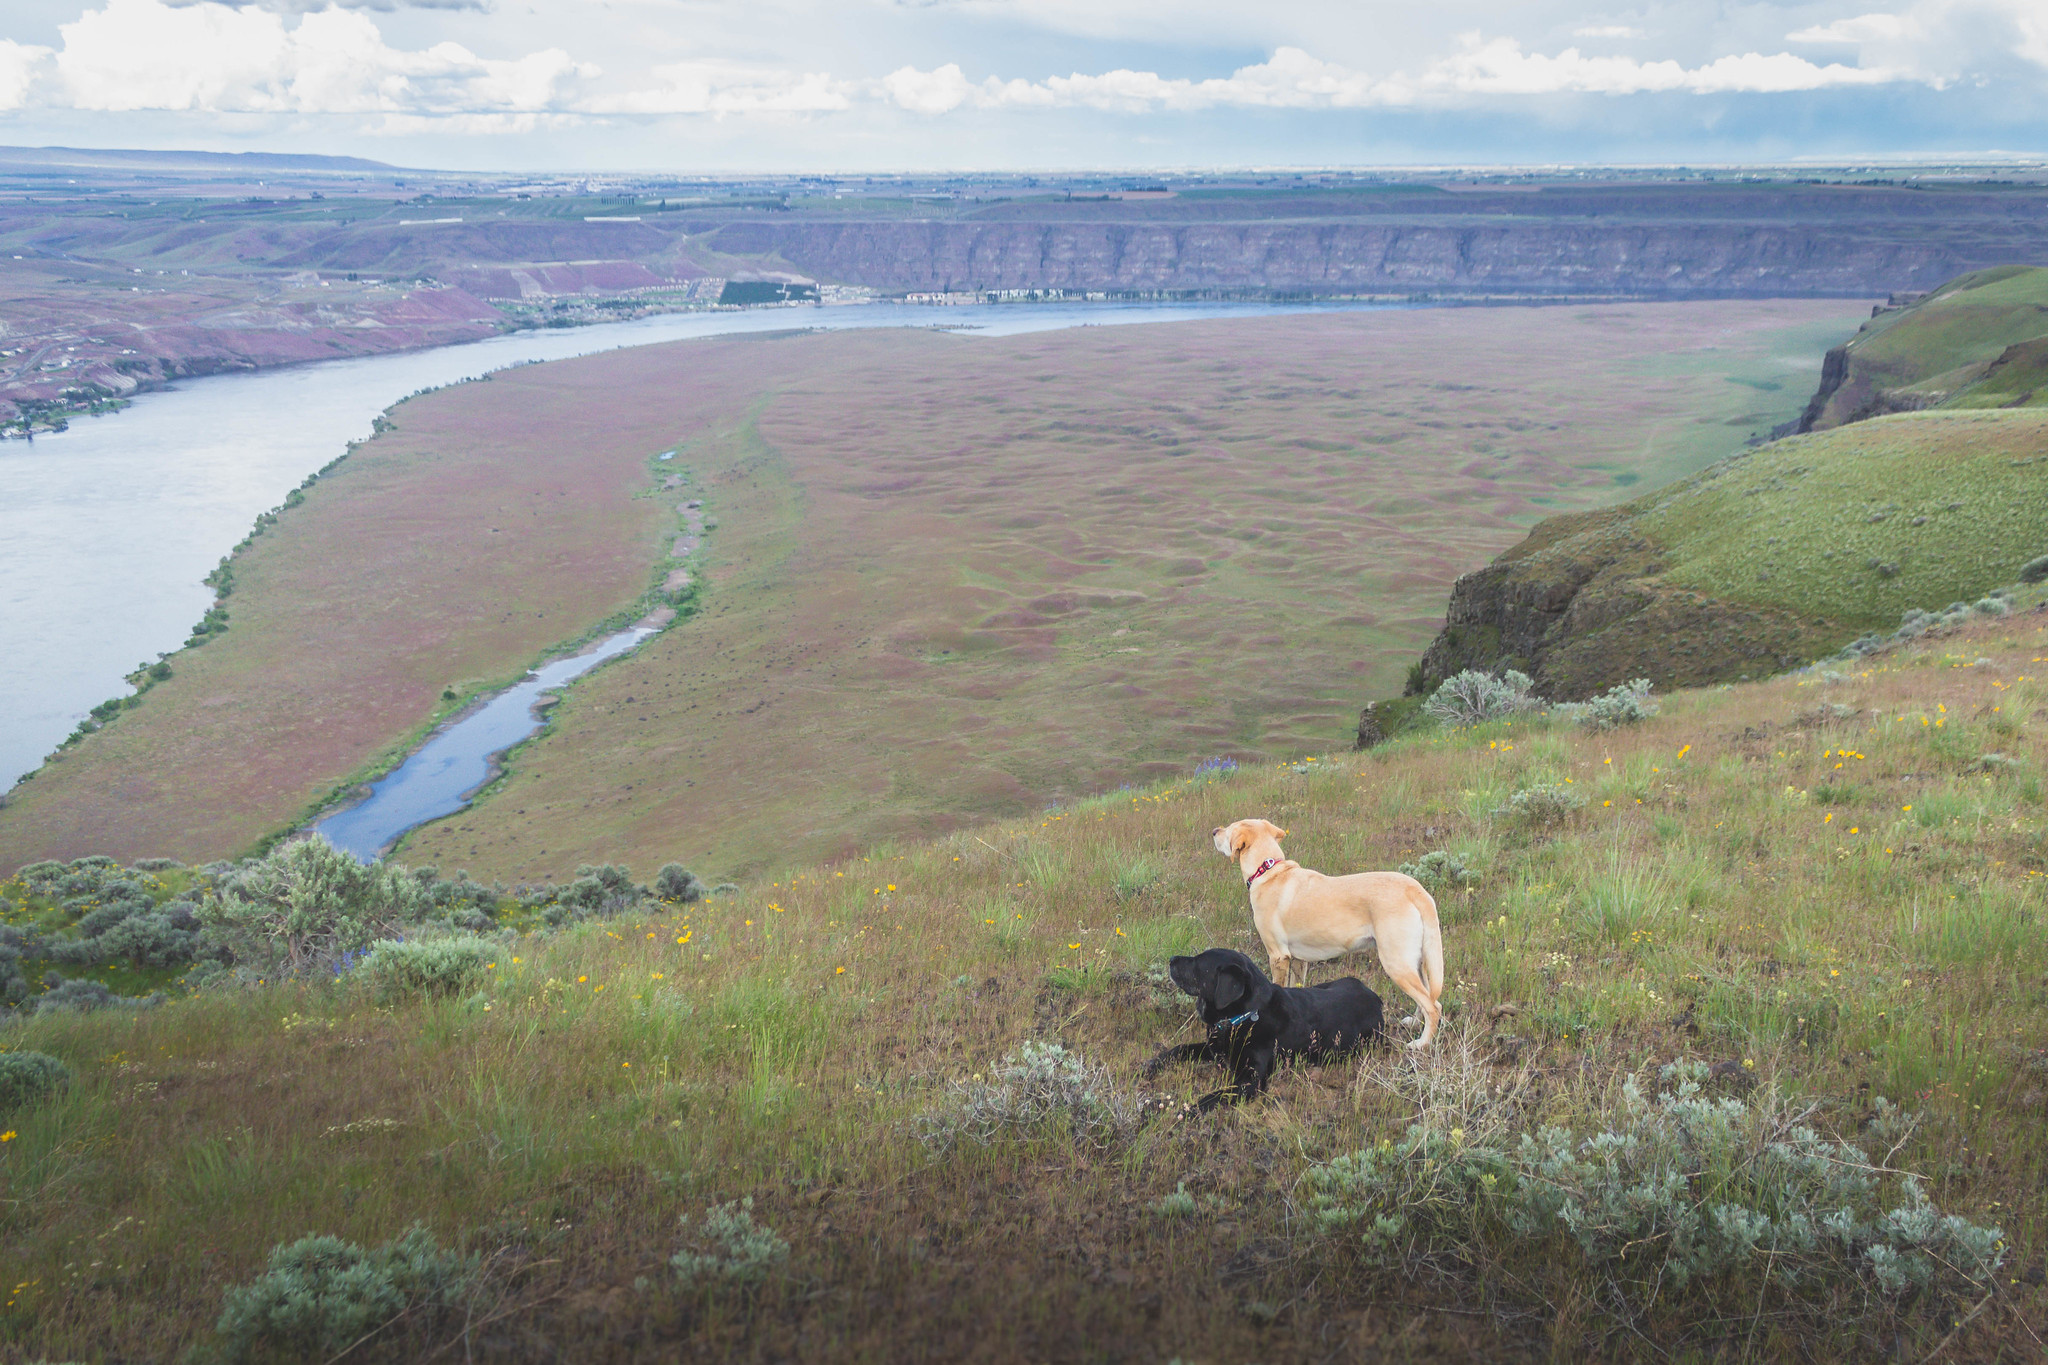 Desert dogs on Cape Horn